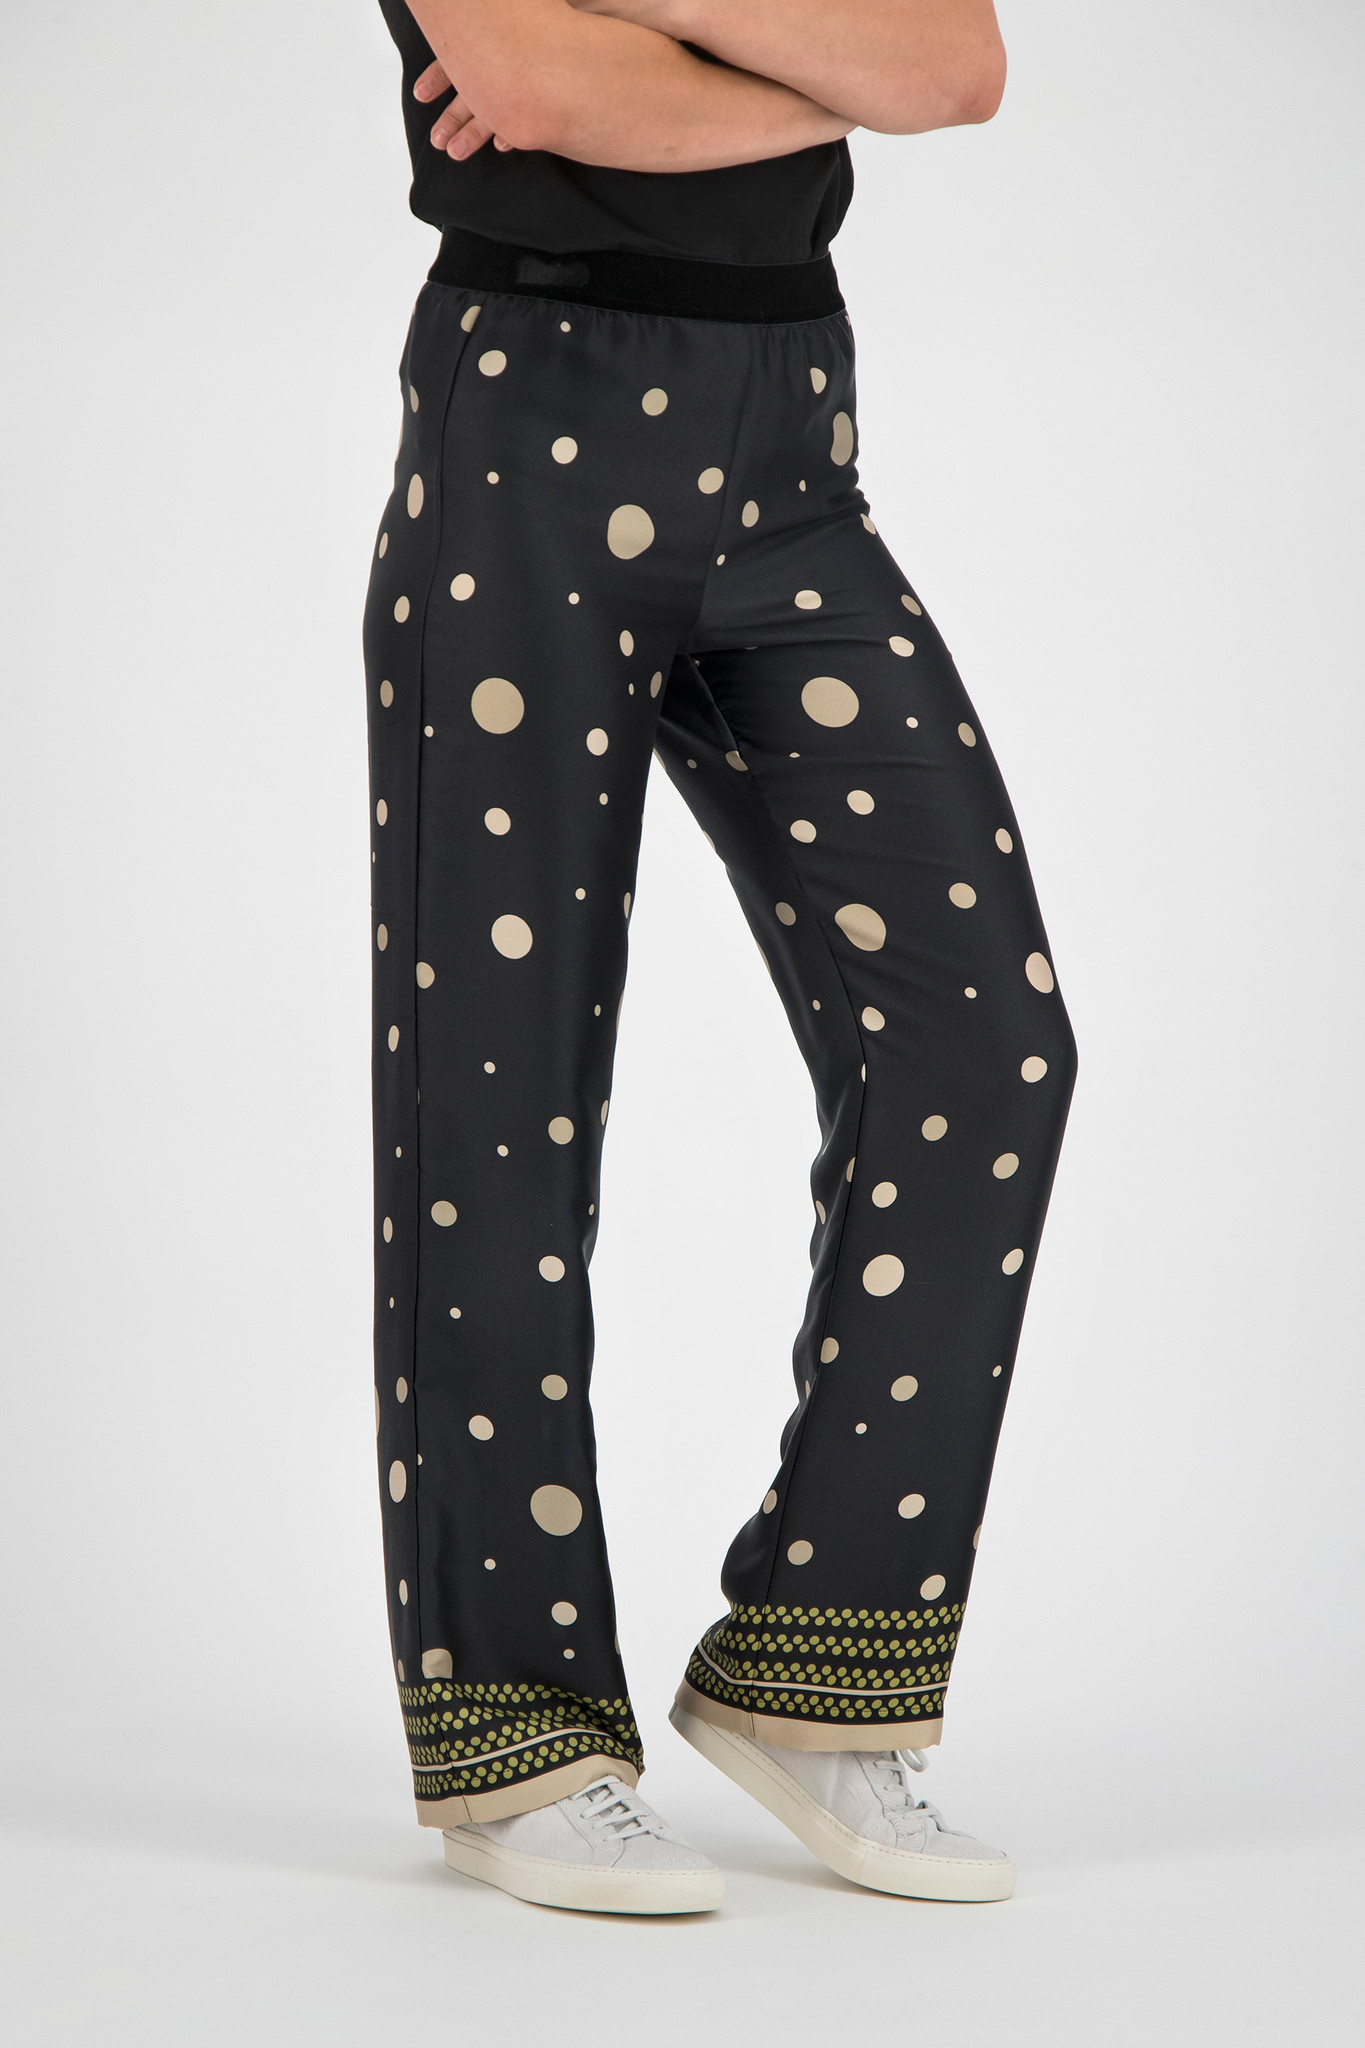 SYLVER Panel Dot Trousers - Moss